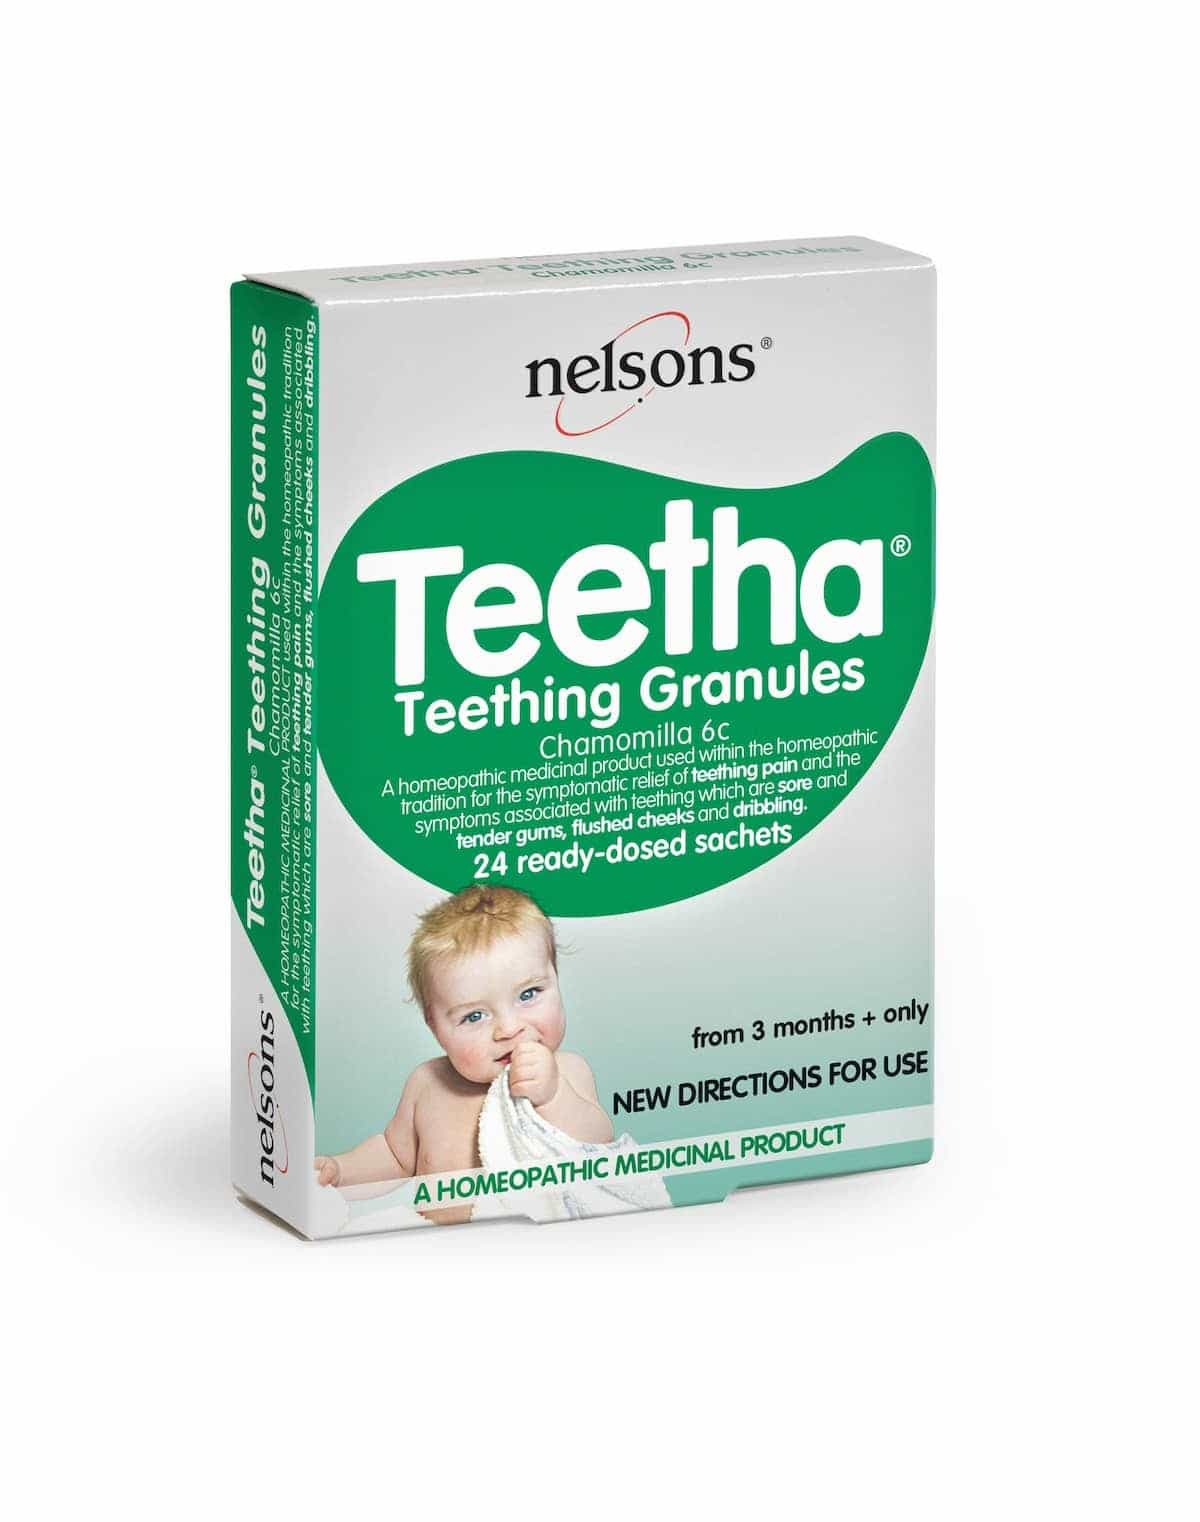 The day we asked google whether our baby could have dentures. Plus some advice on looking after tiny teeth from Nelsons Teetha Teething granules.